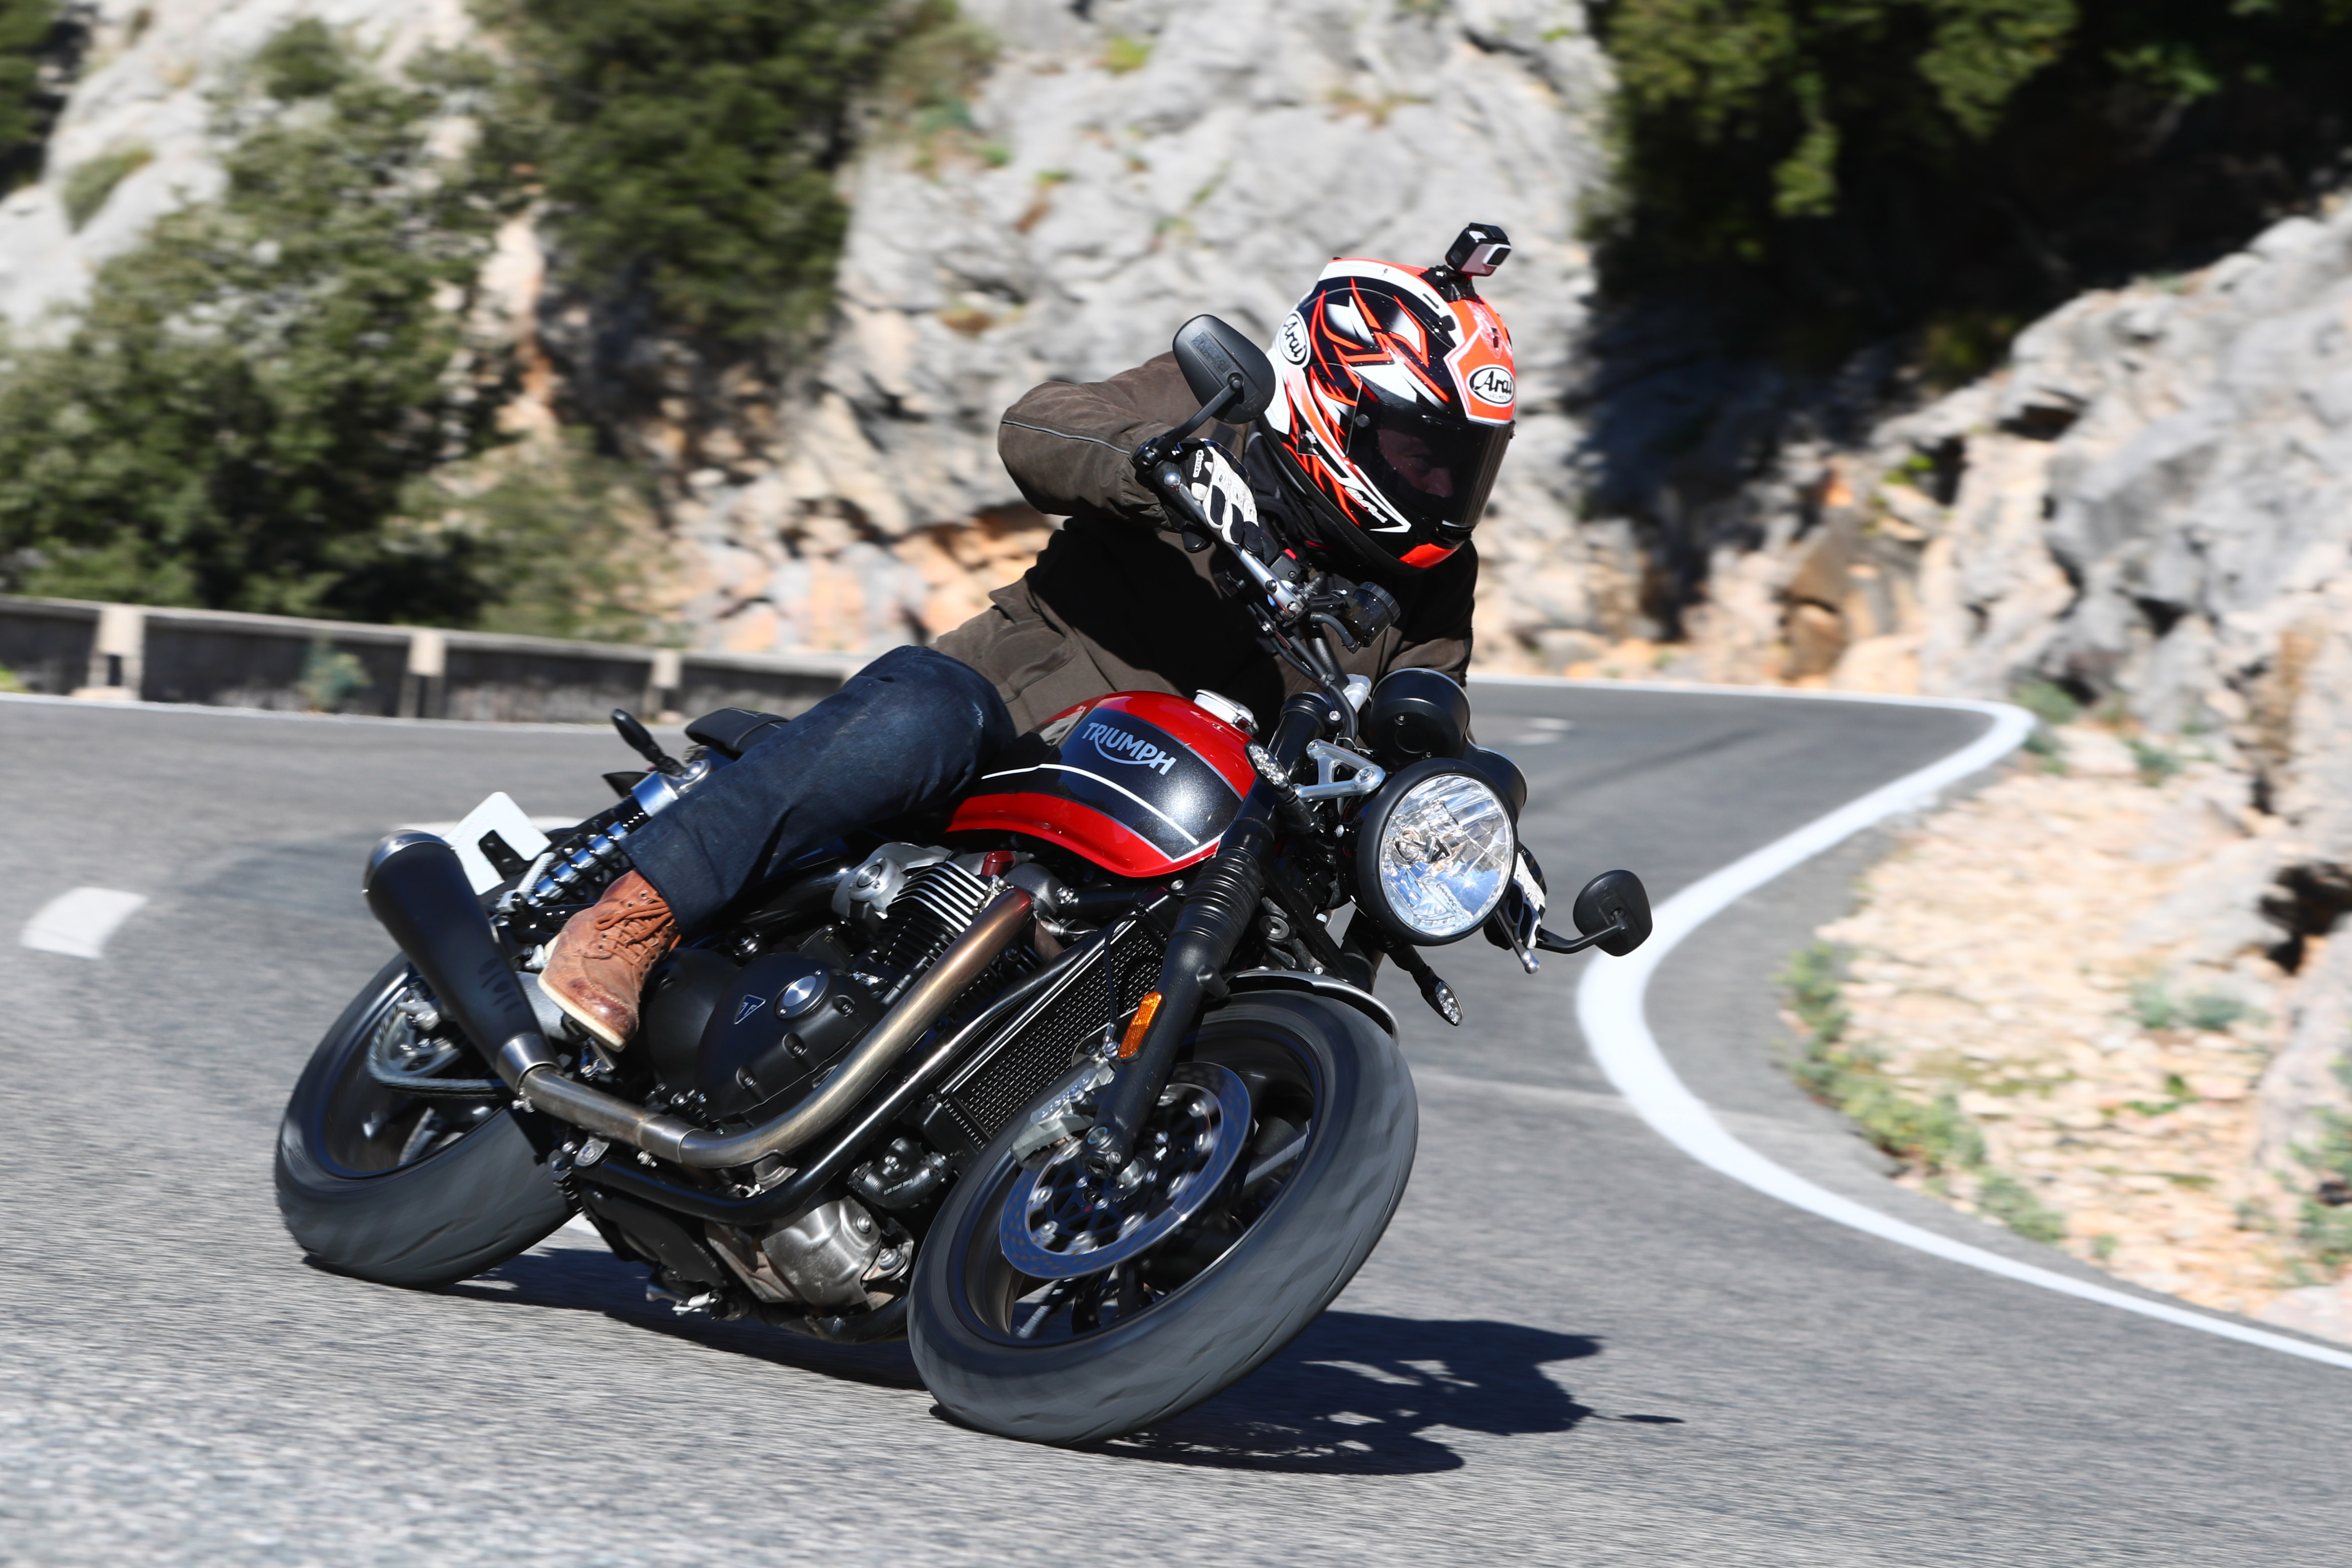 Triumph Speed Twin 1200 (2019) Review